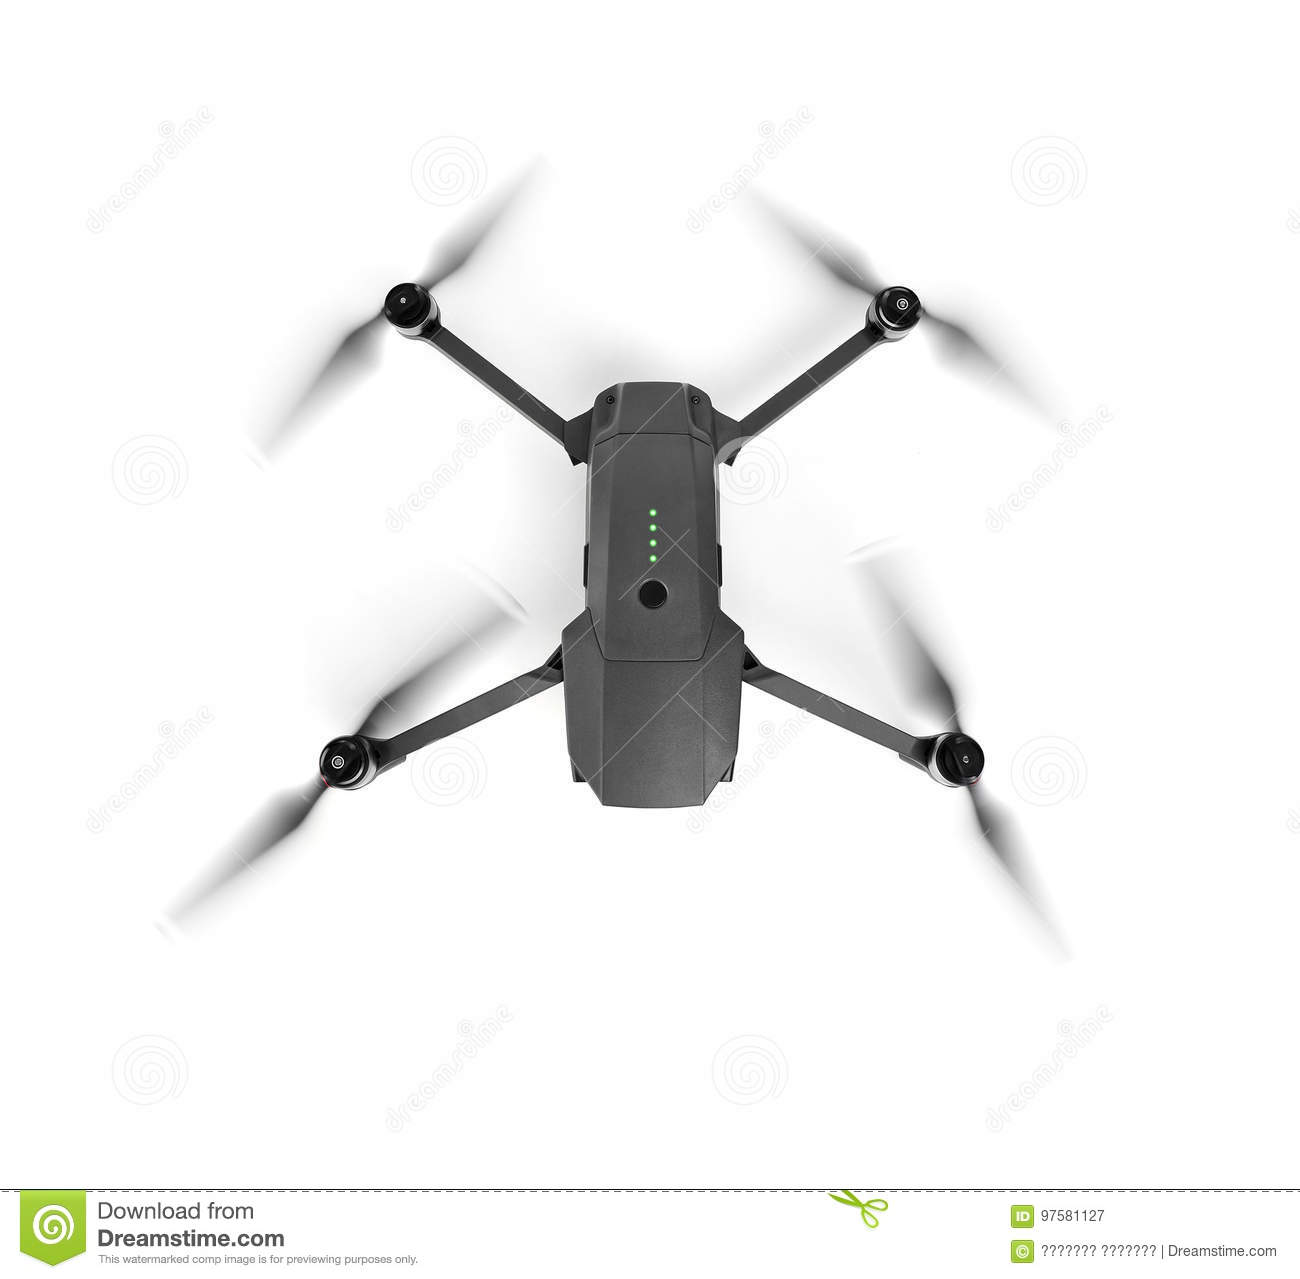 Drone on white background. One of the most portable drones